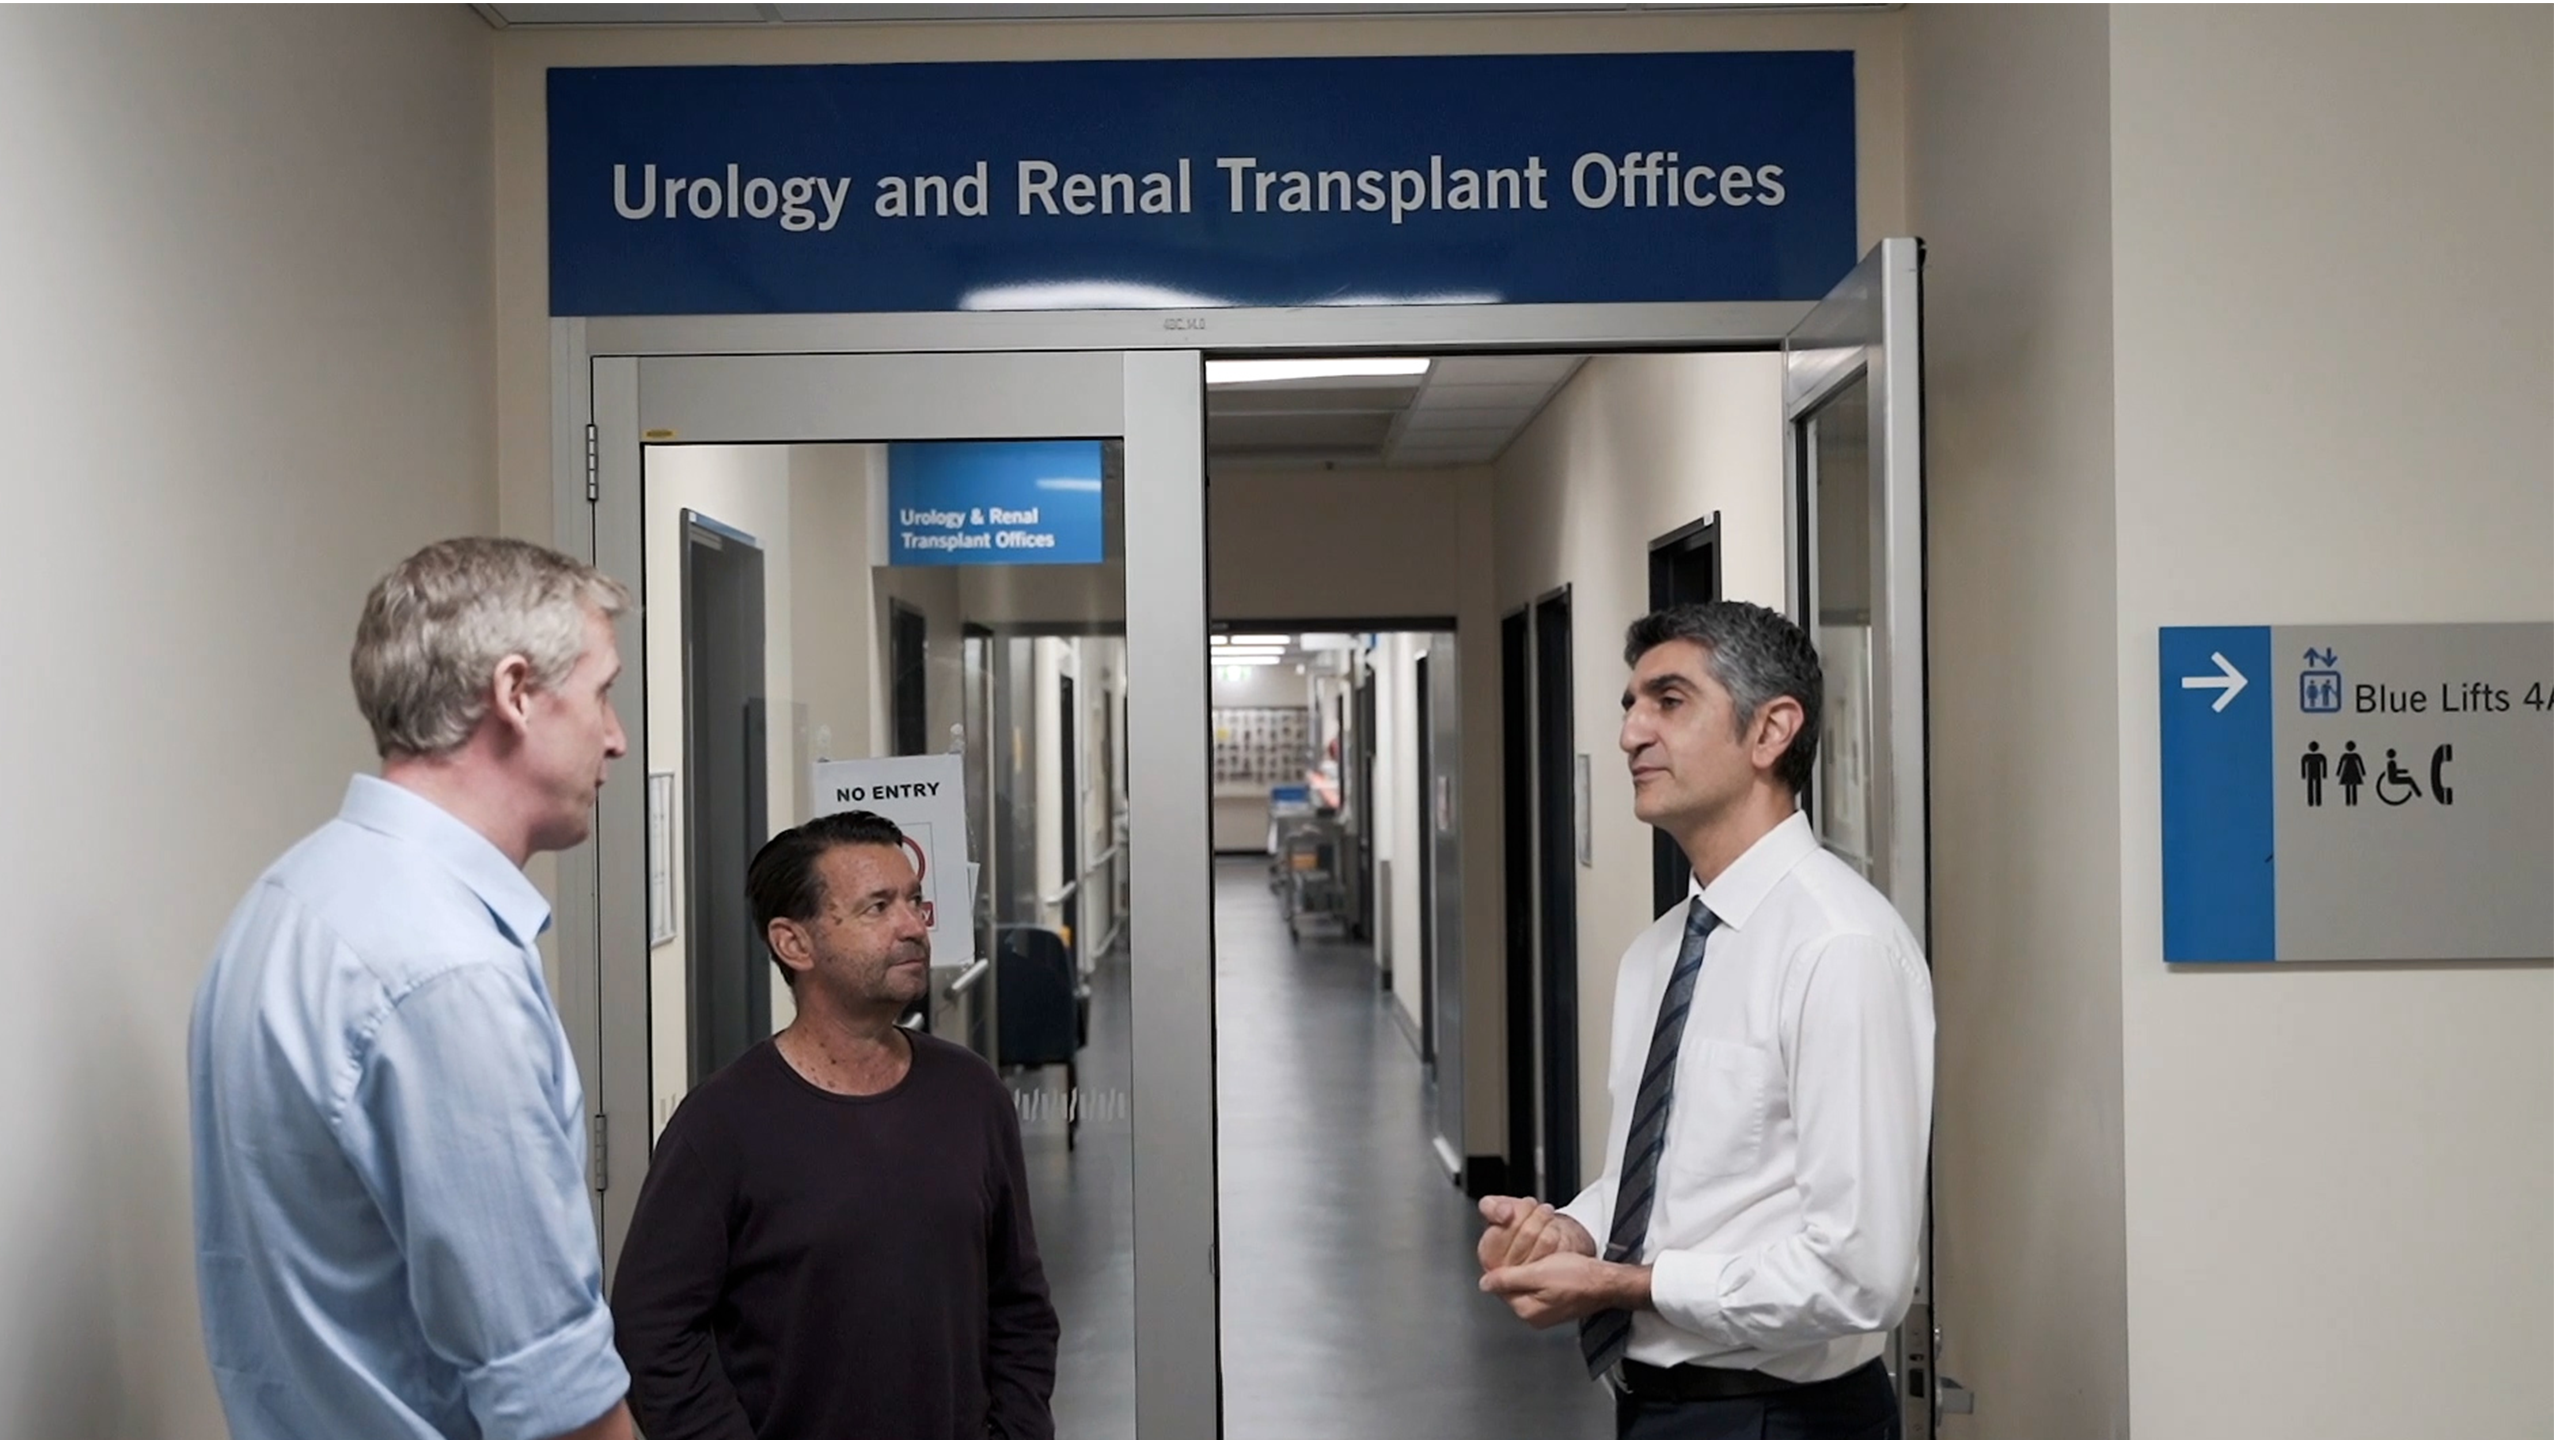 Associate Professor James Wells, Matty Hempstalk and Professor Kiarash Khosrotehrani stand in front of the transplant offices at the PA Hospital.